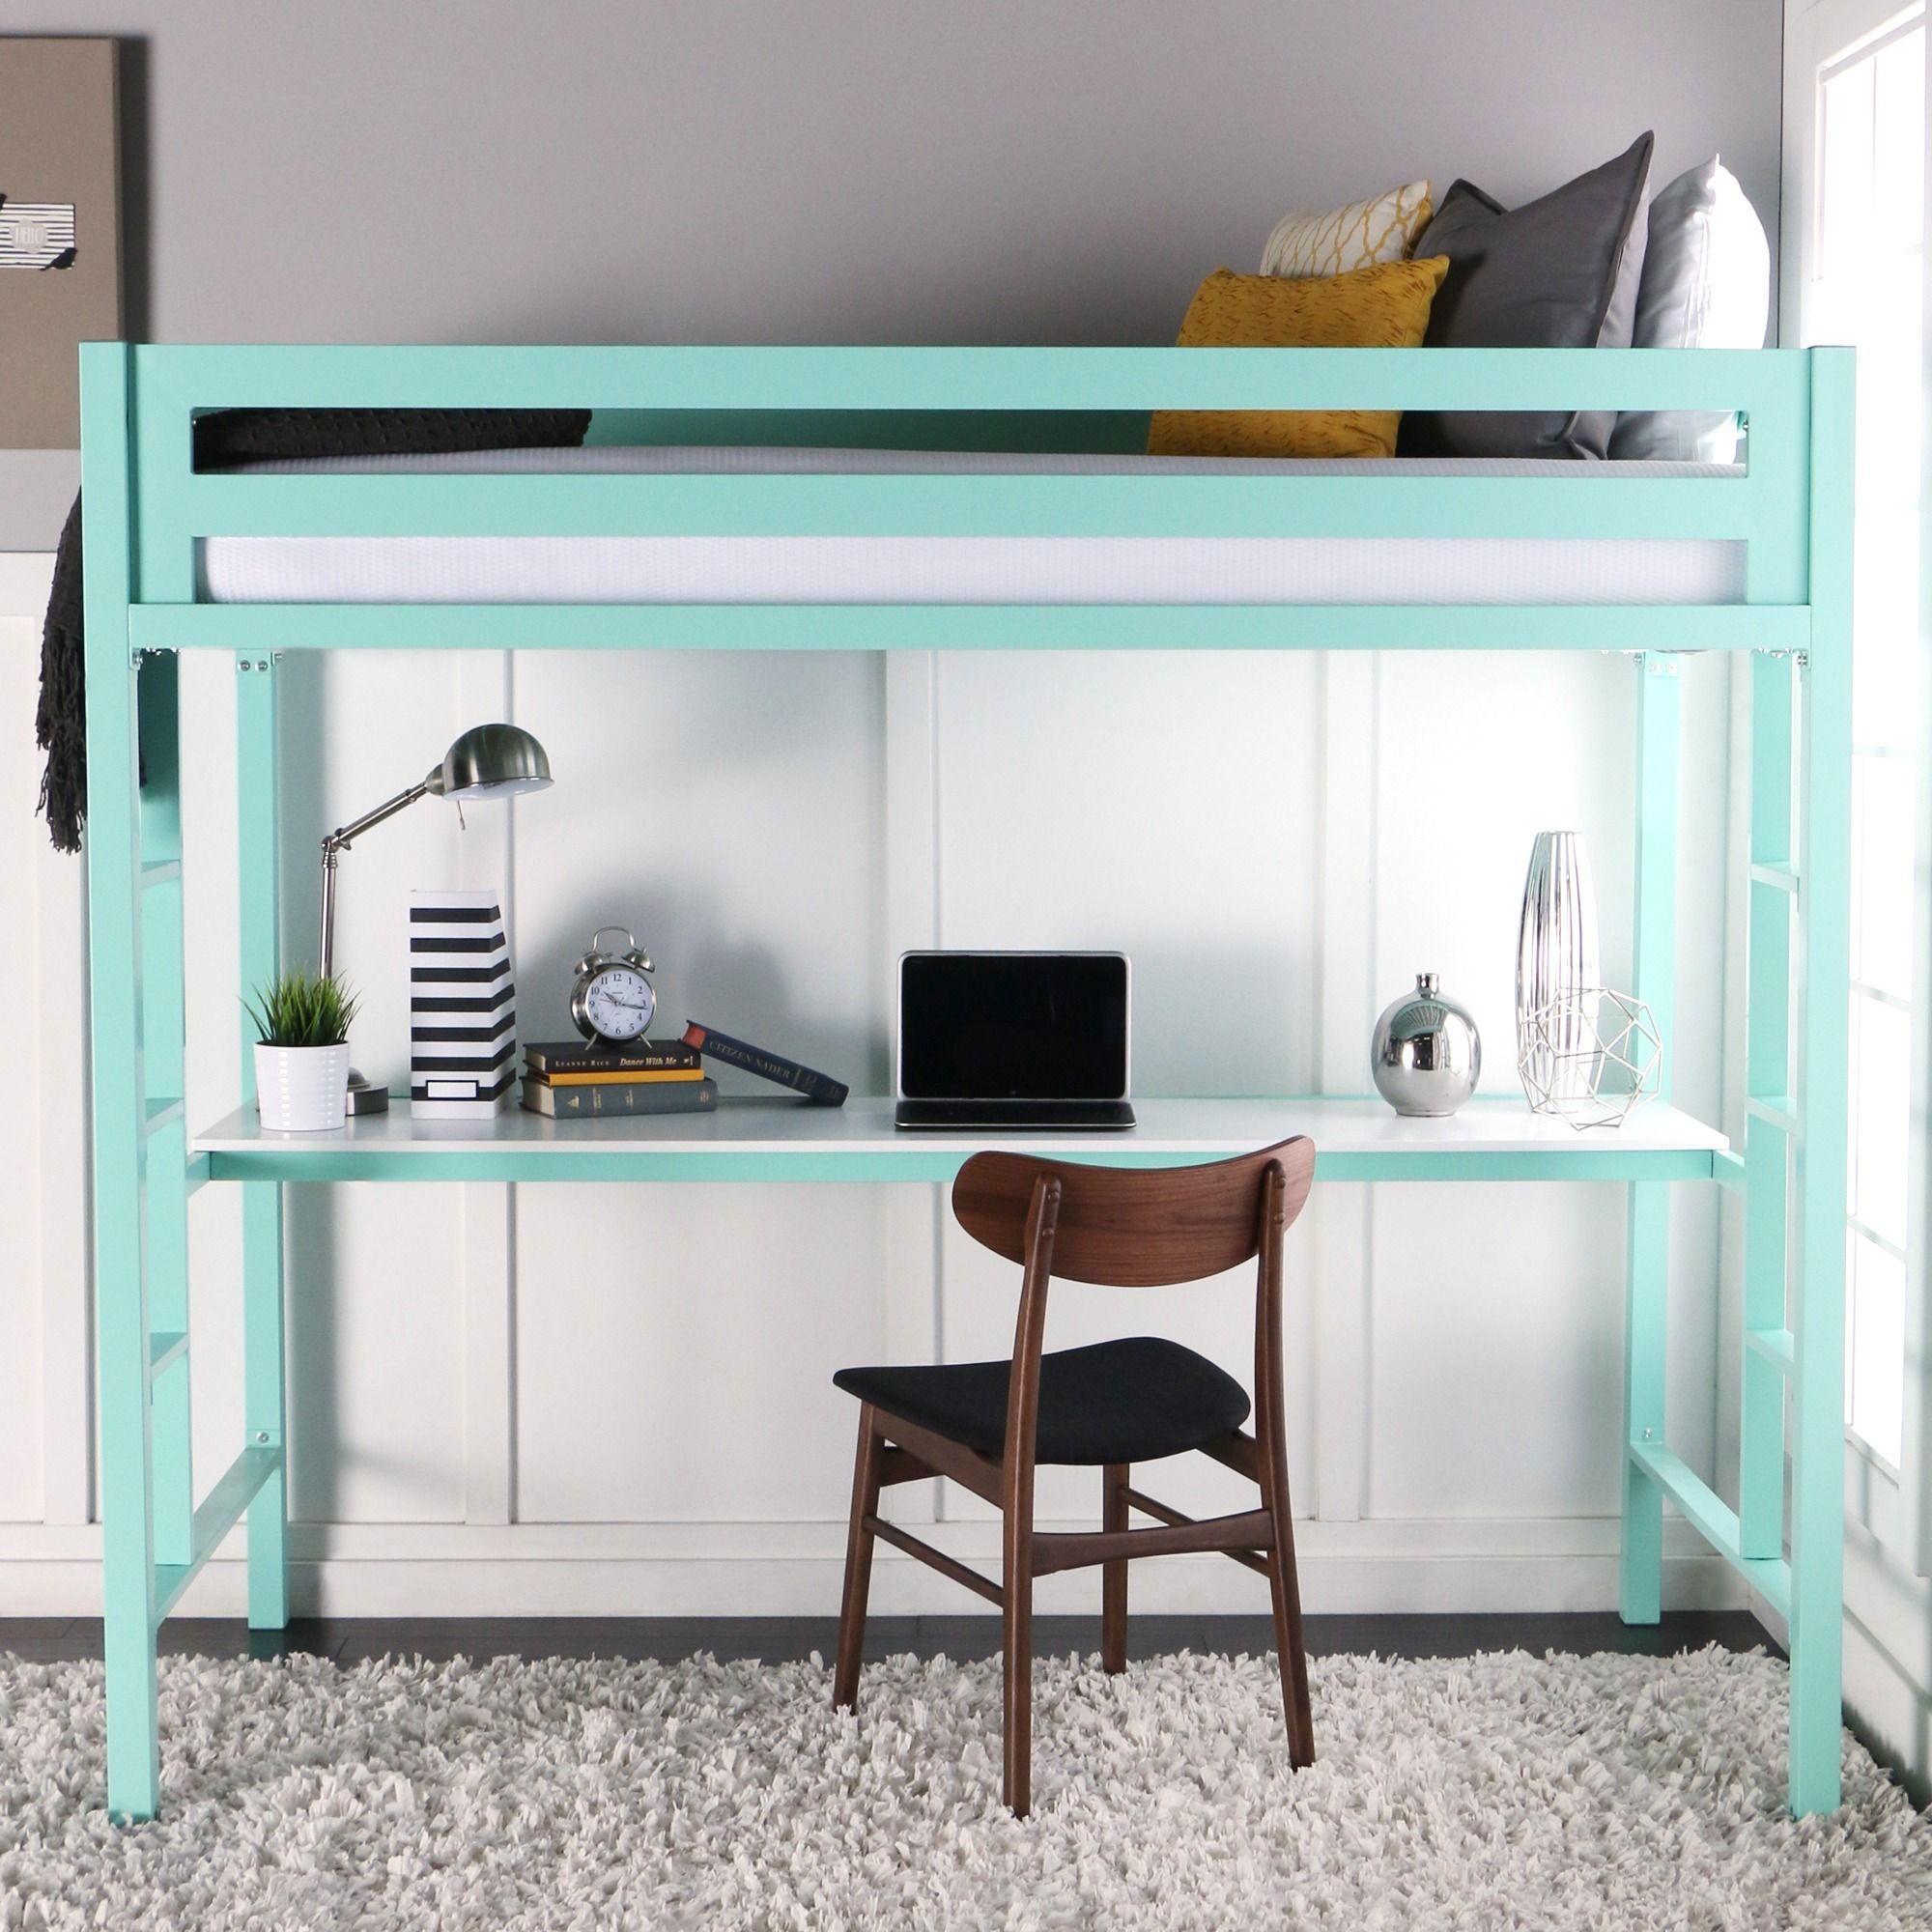 Loft bed with desk  Twin Metal Loft Bed with Desk  Mint Twin Metal Loft Bed with